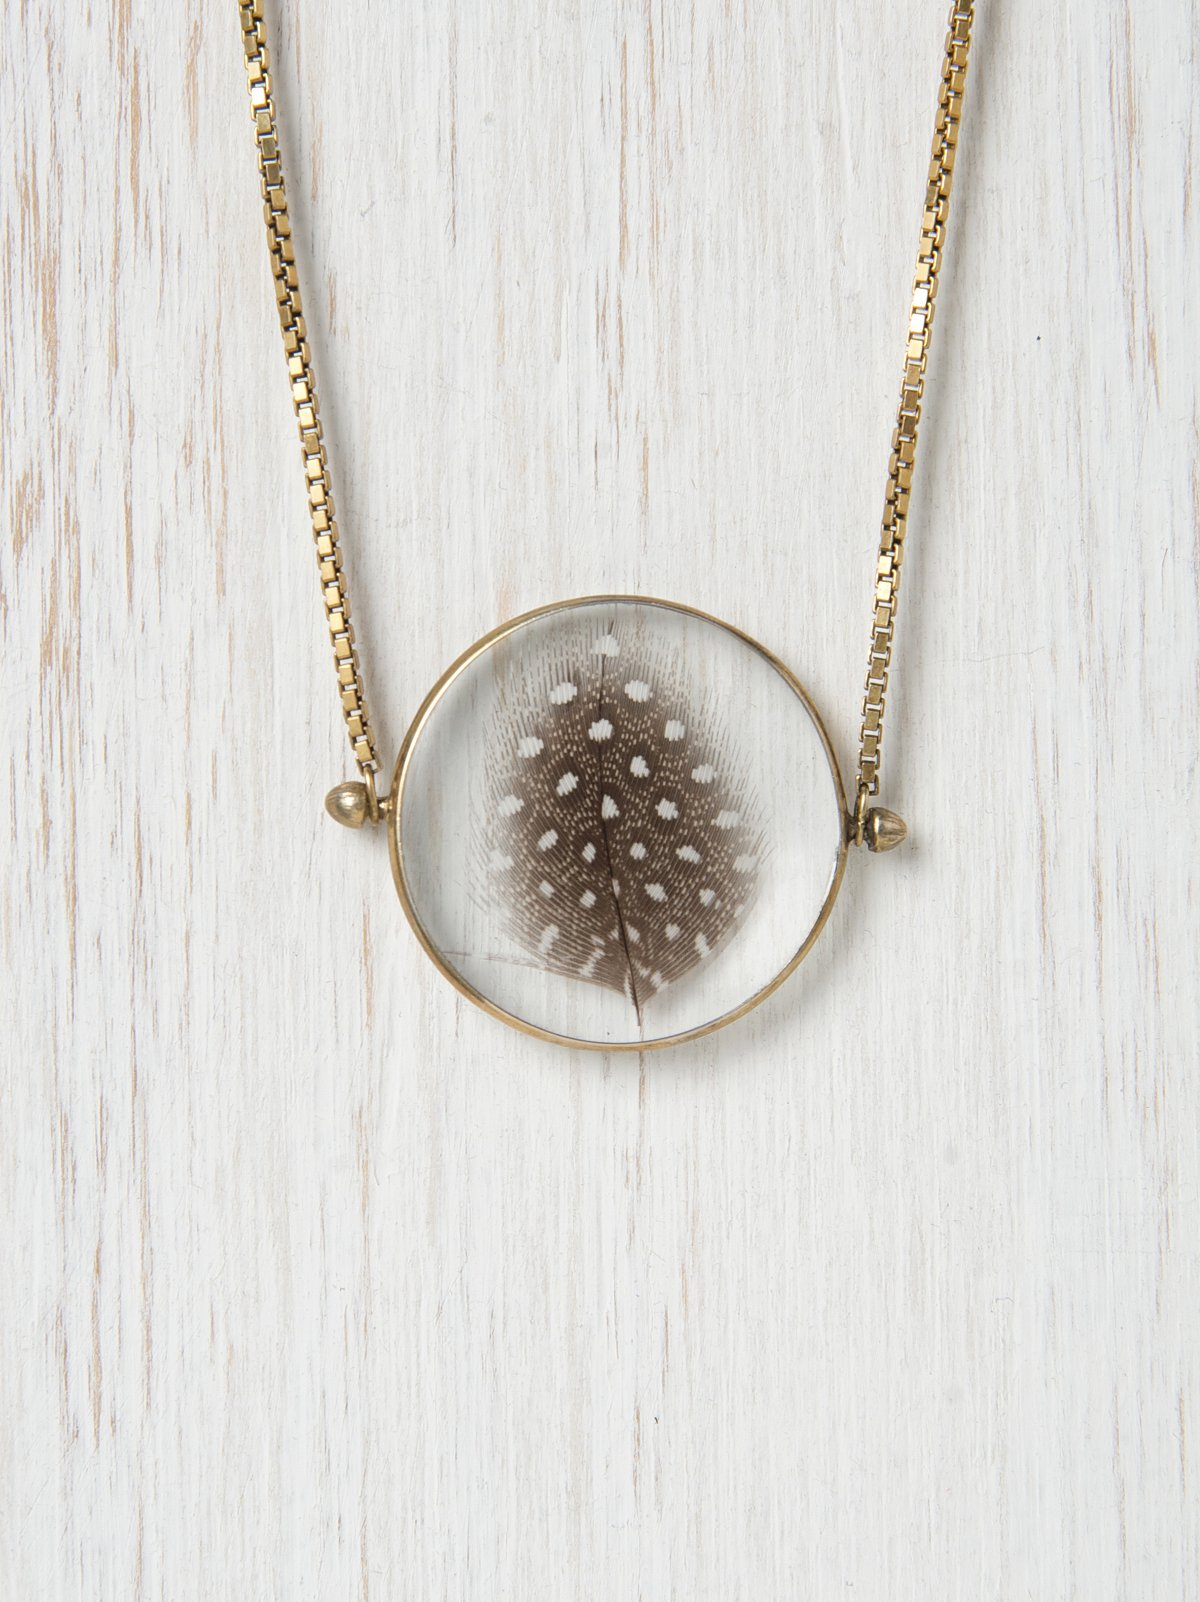 Feather Looking Glass Necklace